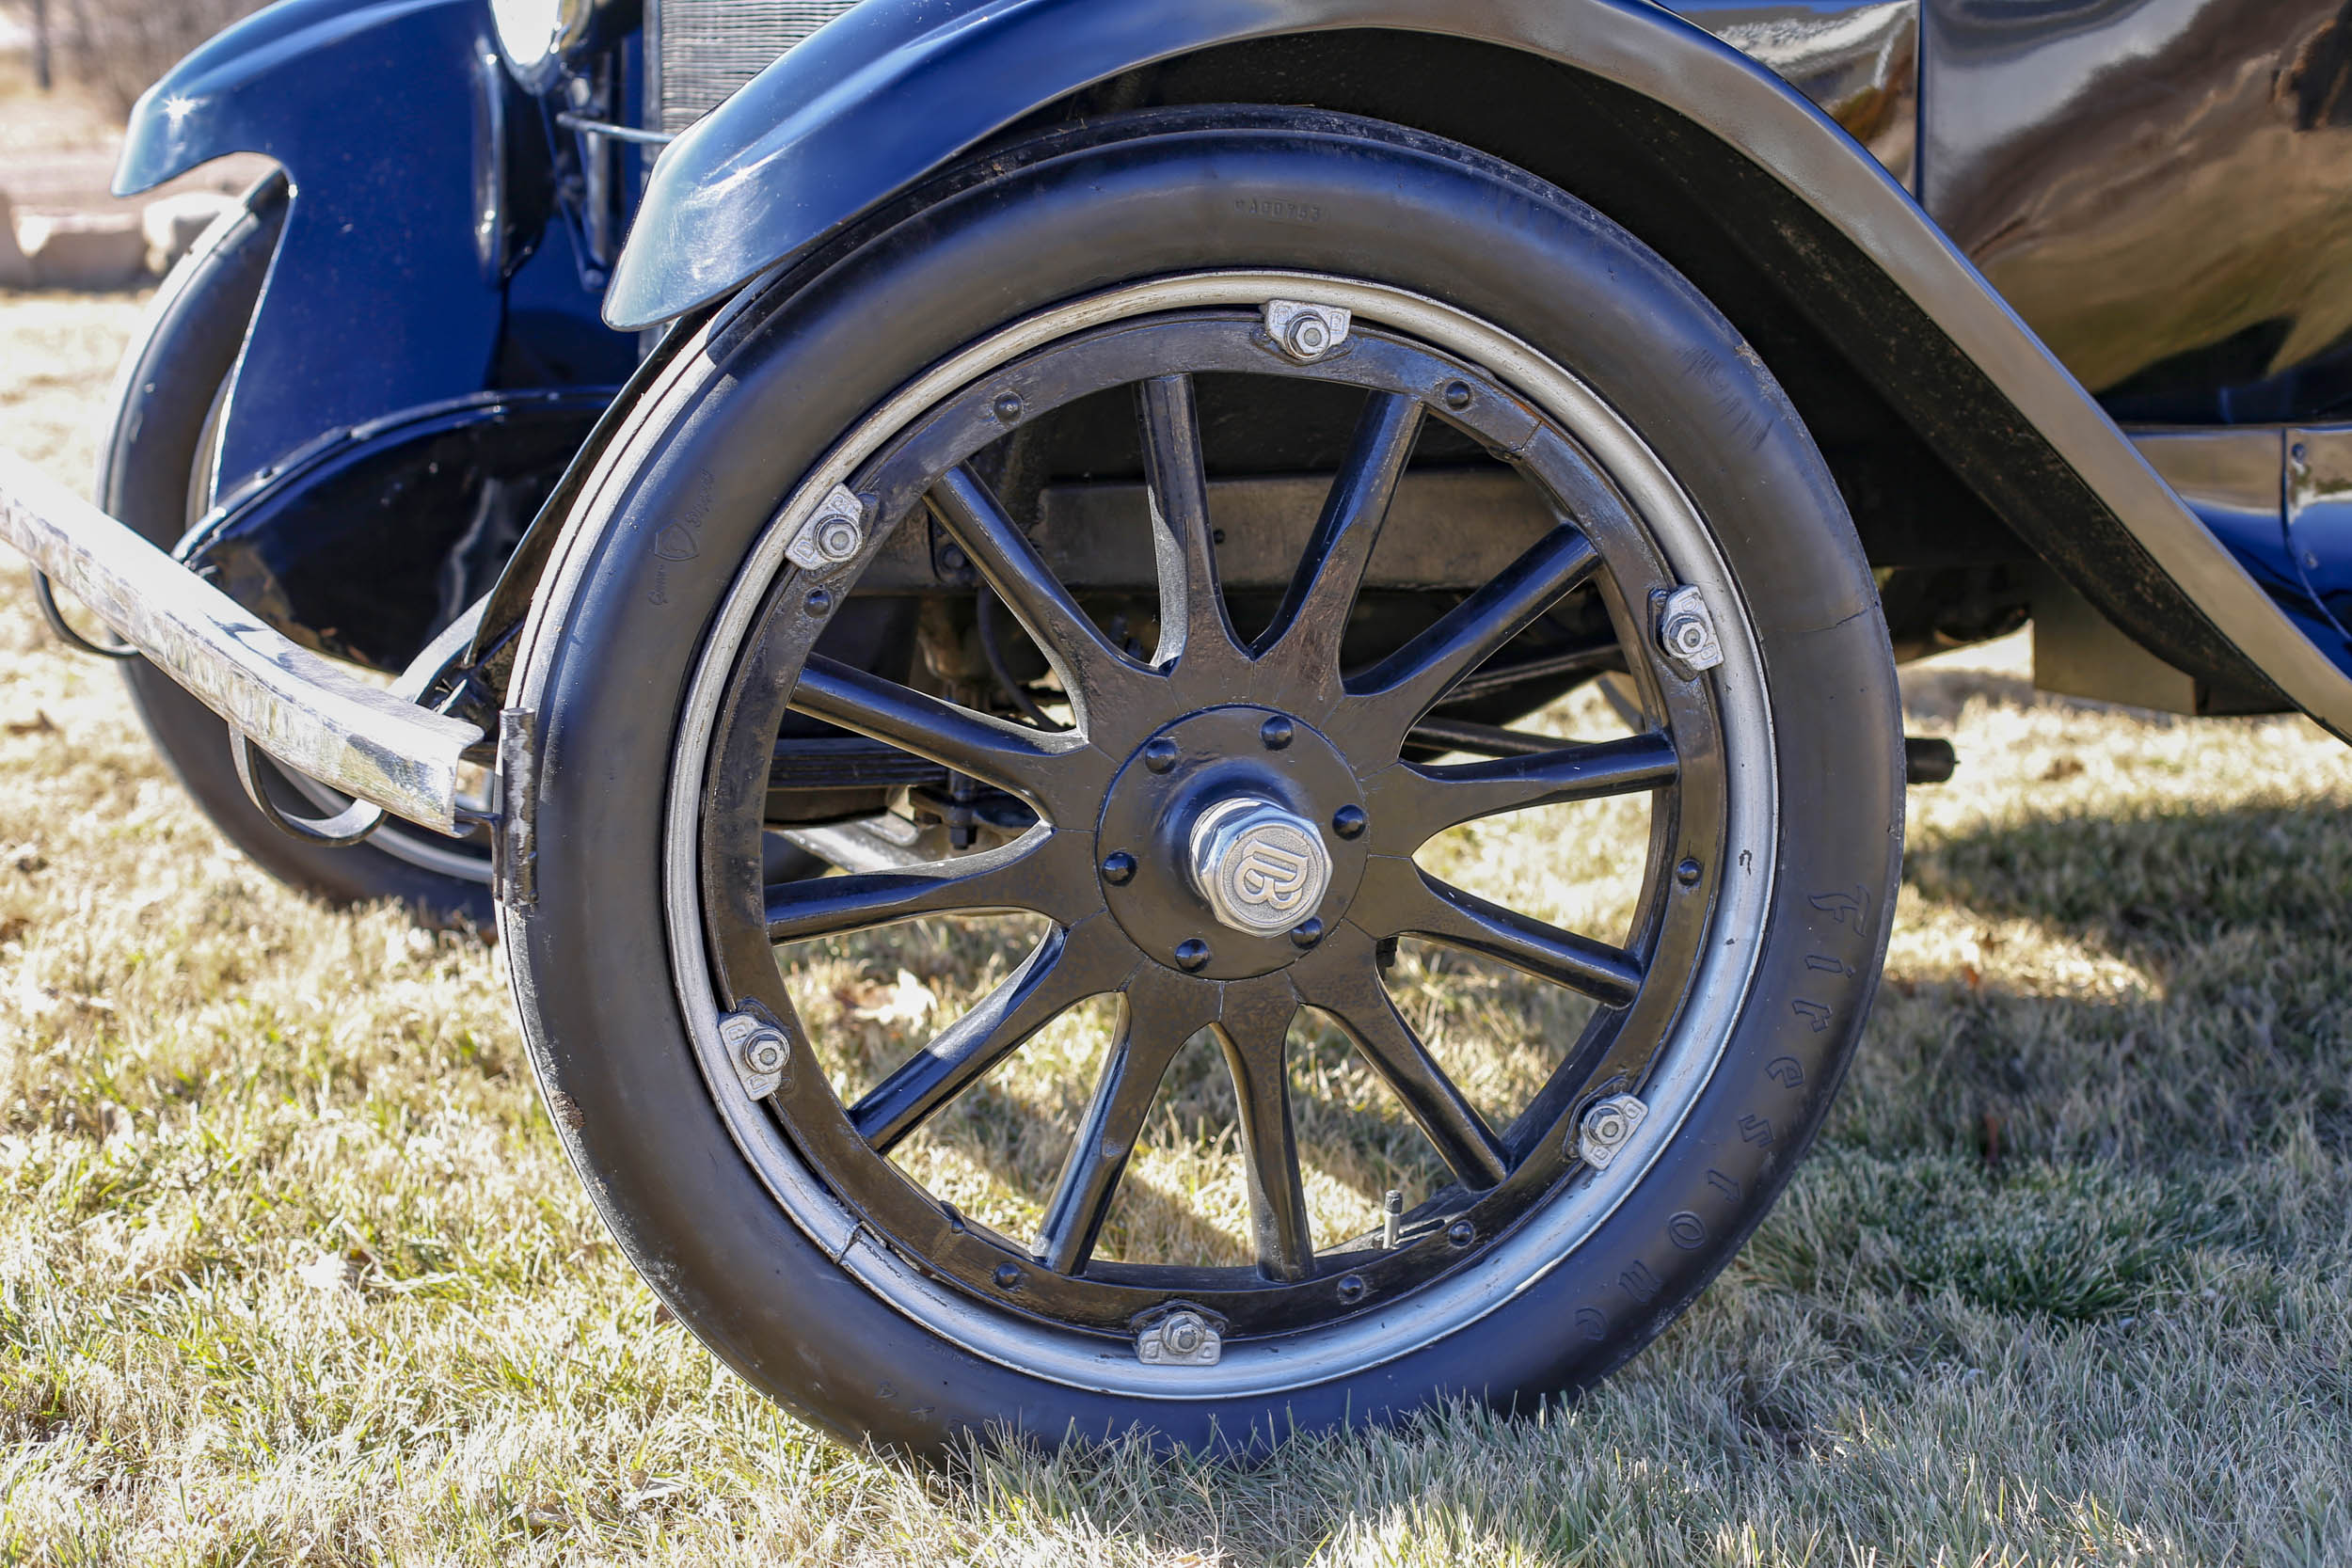 """Jimmy Stewart crashed the car into a tree with such force that the bumper needed to be repaired, and the left front fender and wheel were both replaced. """"If you look closely,"""" Smith says, """"you can tell that the wheel is from a Dodge truck. The spokes are a bit heftier."""""""